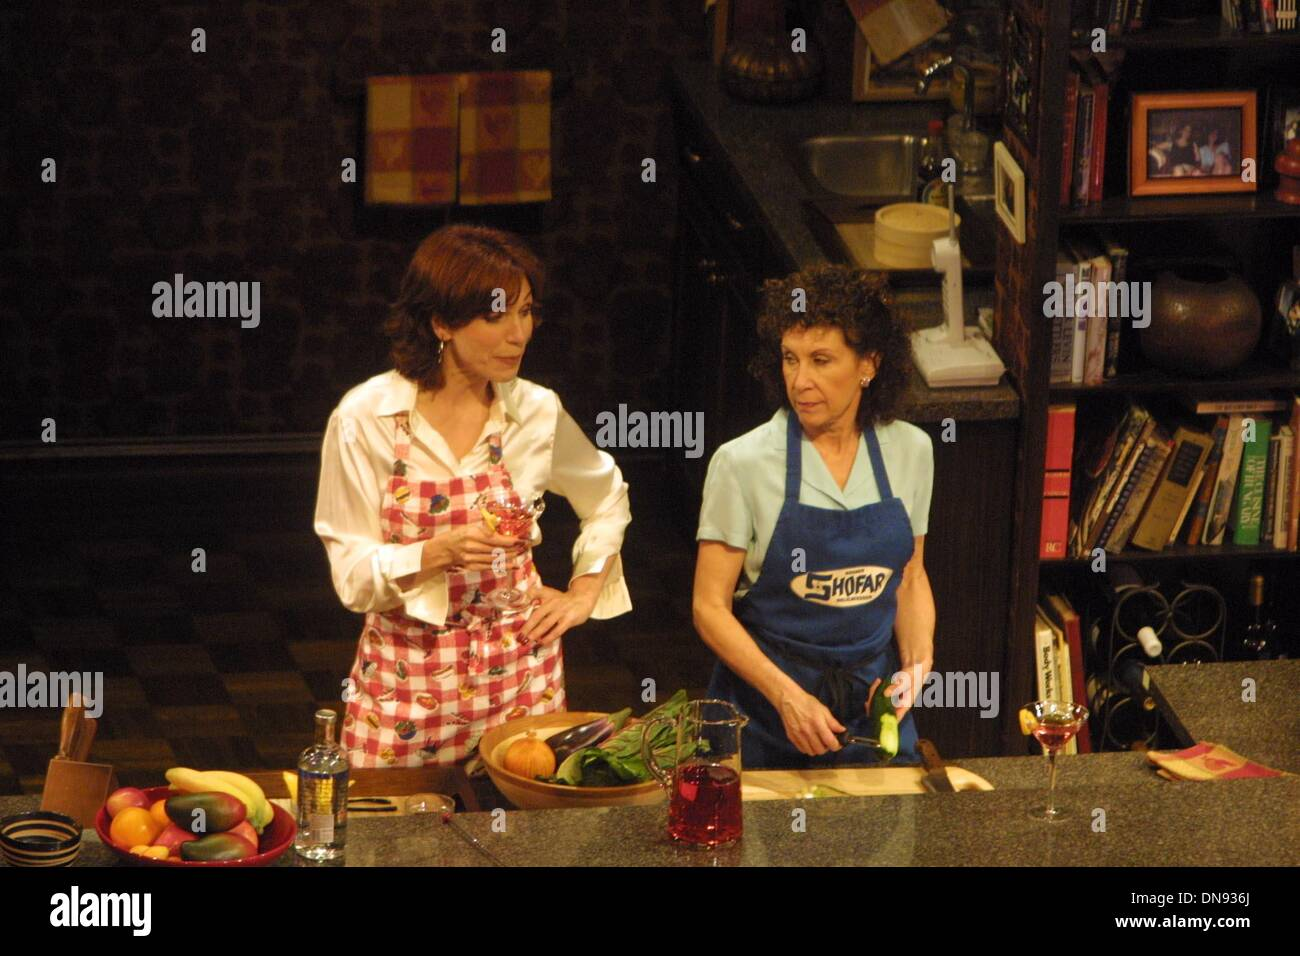 May 29, 2002 - K25179JBB: 5/29/02 SCENES FROM THE PLAY ''THE